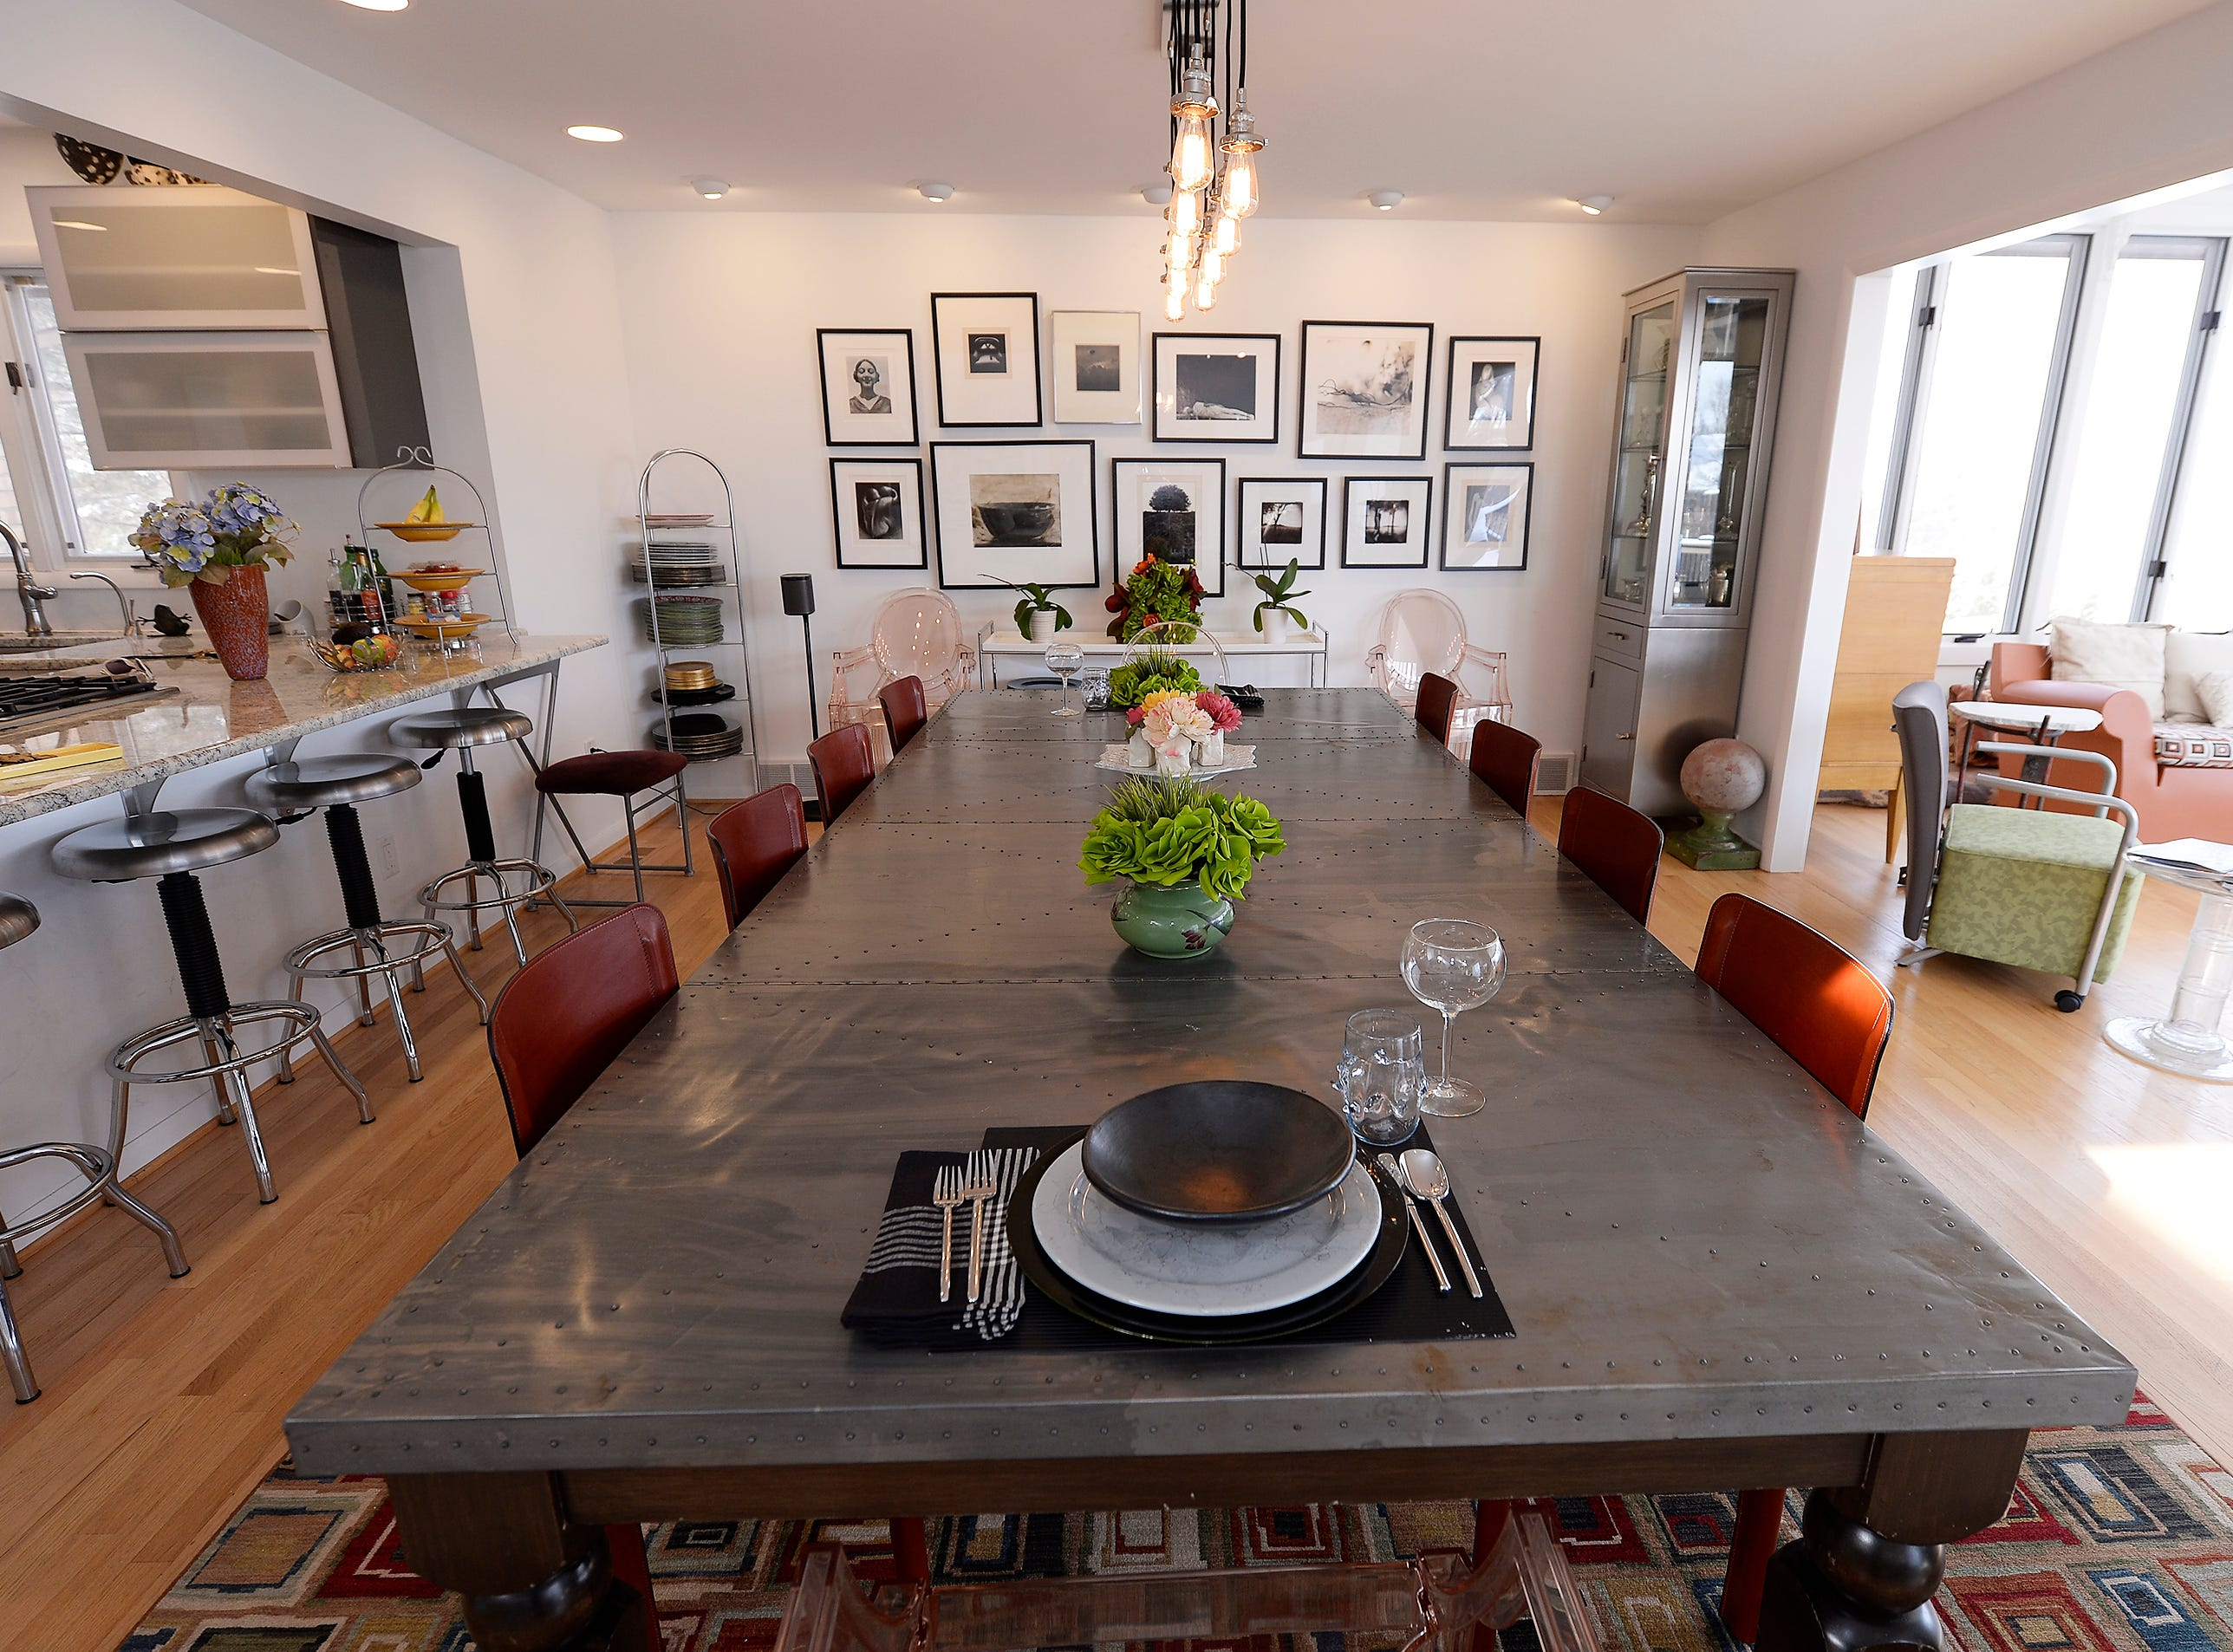 A long table sits in the dining room with a black & white photo wall in the background.